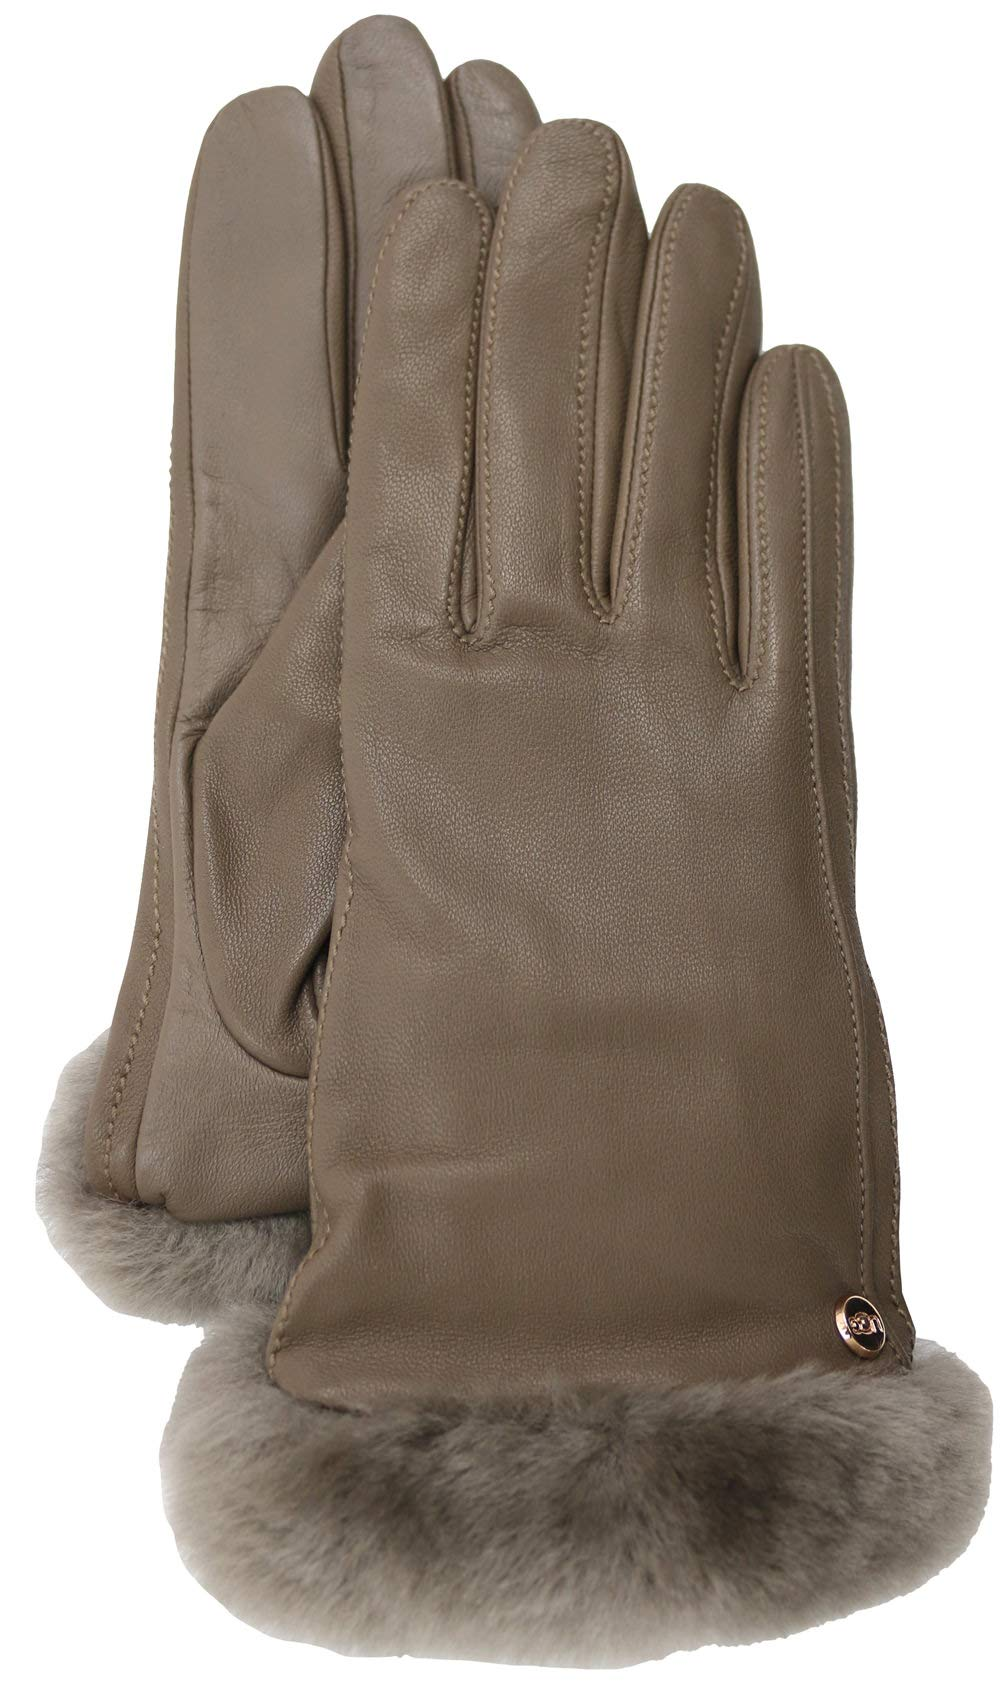 UGG Womens Classic Leather Shorty Tech Glove, Stormy Grey, Size Medium by UGG